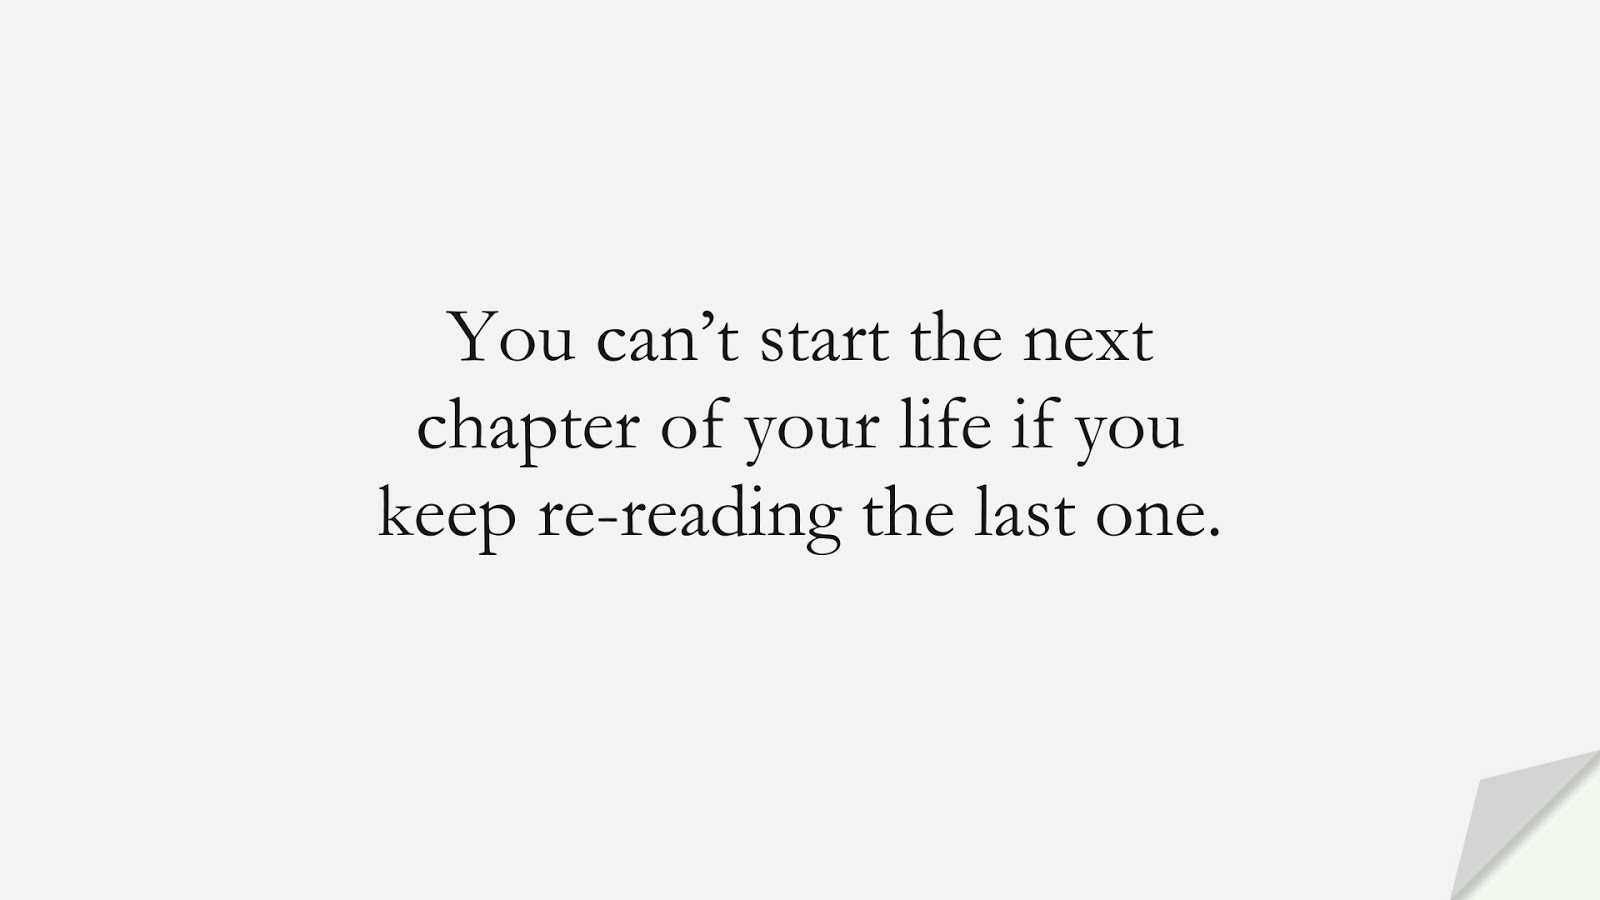 You can't start the next chapter of your life if you keep re-reading the last one.FALSE